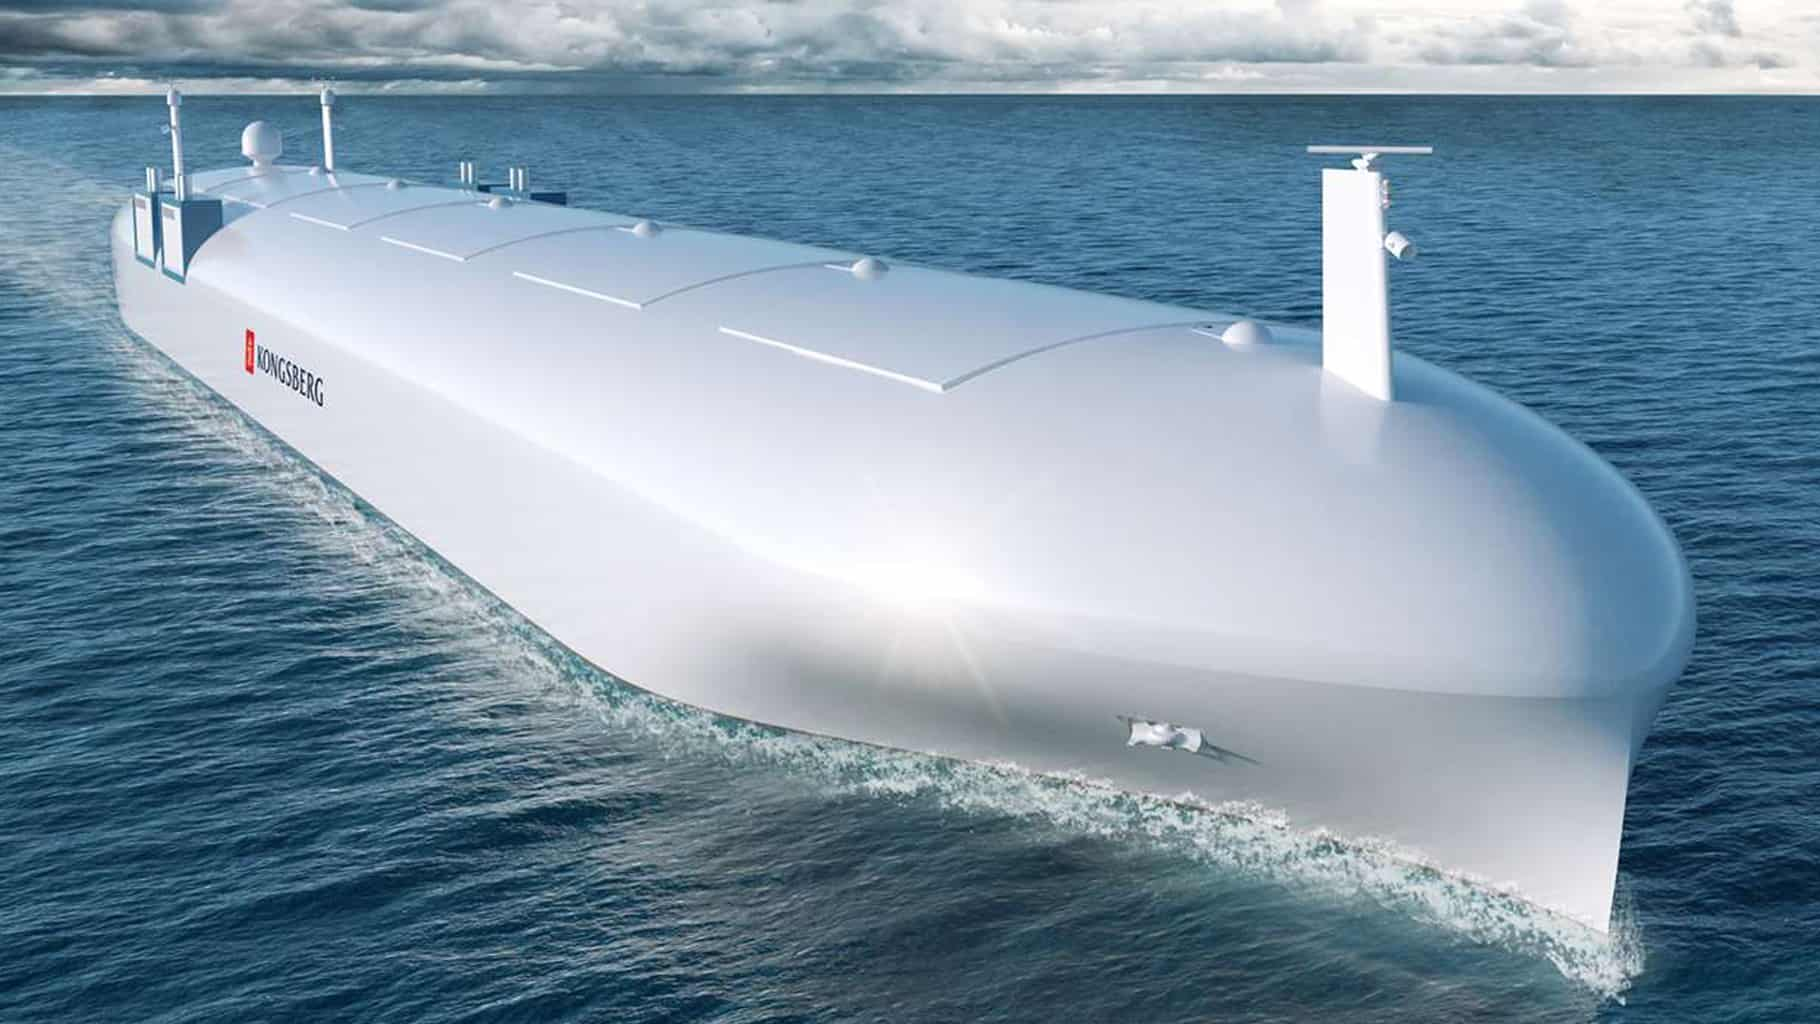 The future of autonomous ships rests in their ability to tackle cyberattacks (Photo: Kongsberg)